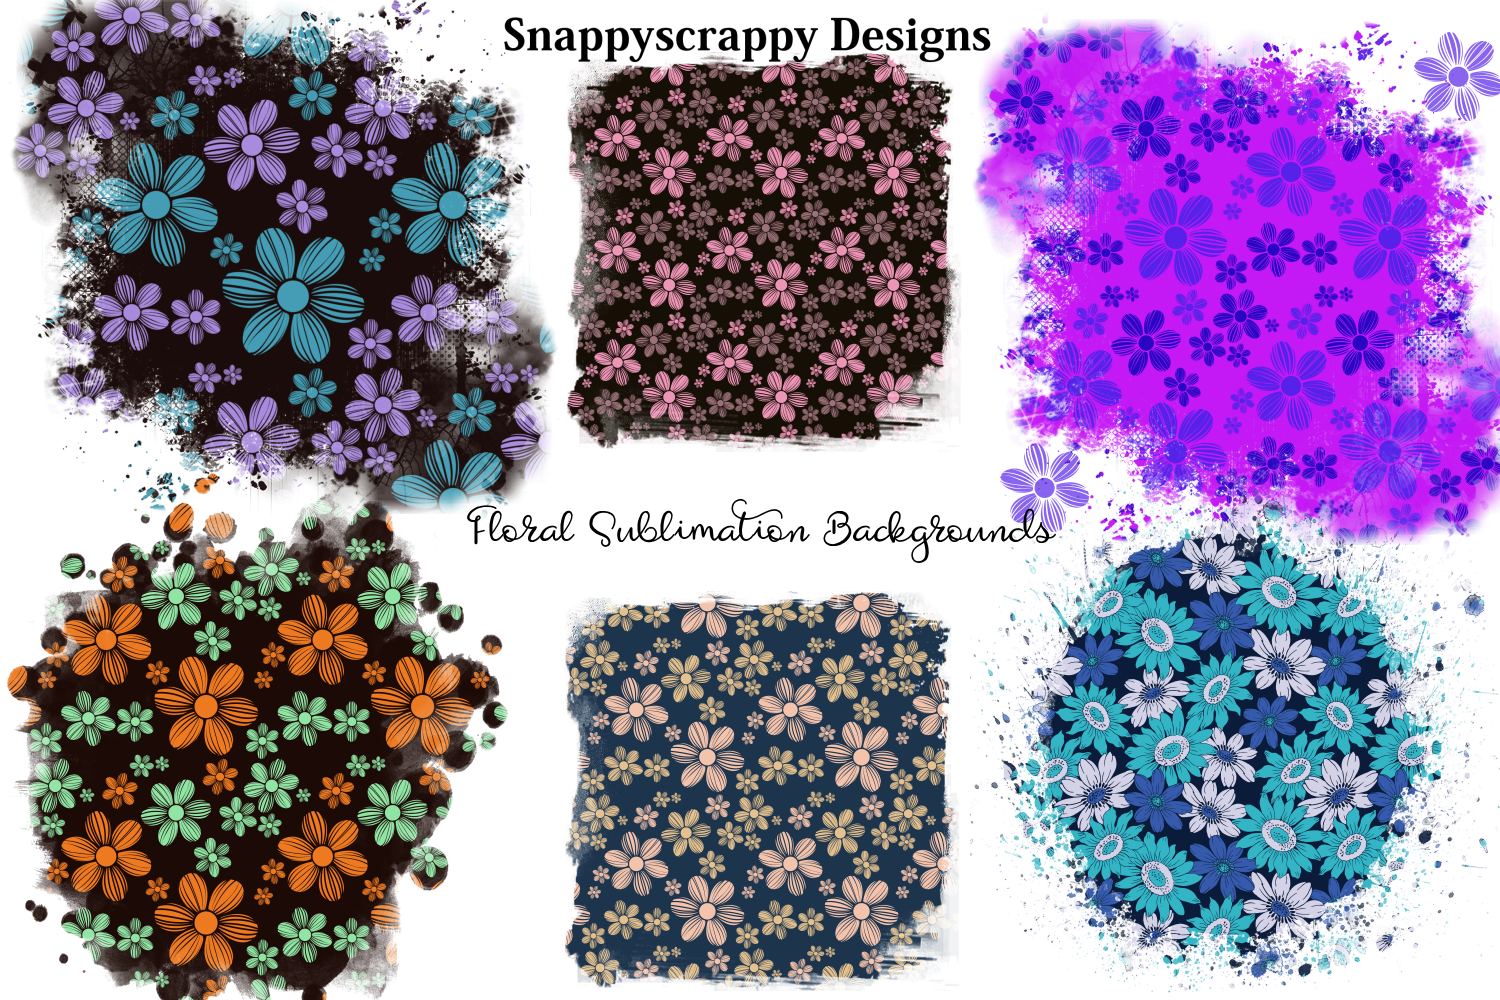 Floral Sublimation Backgrounds example image 1